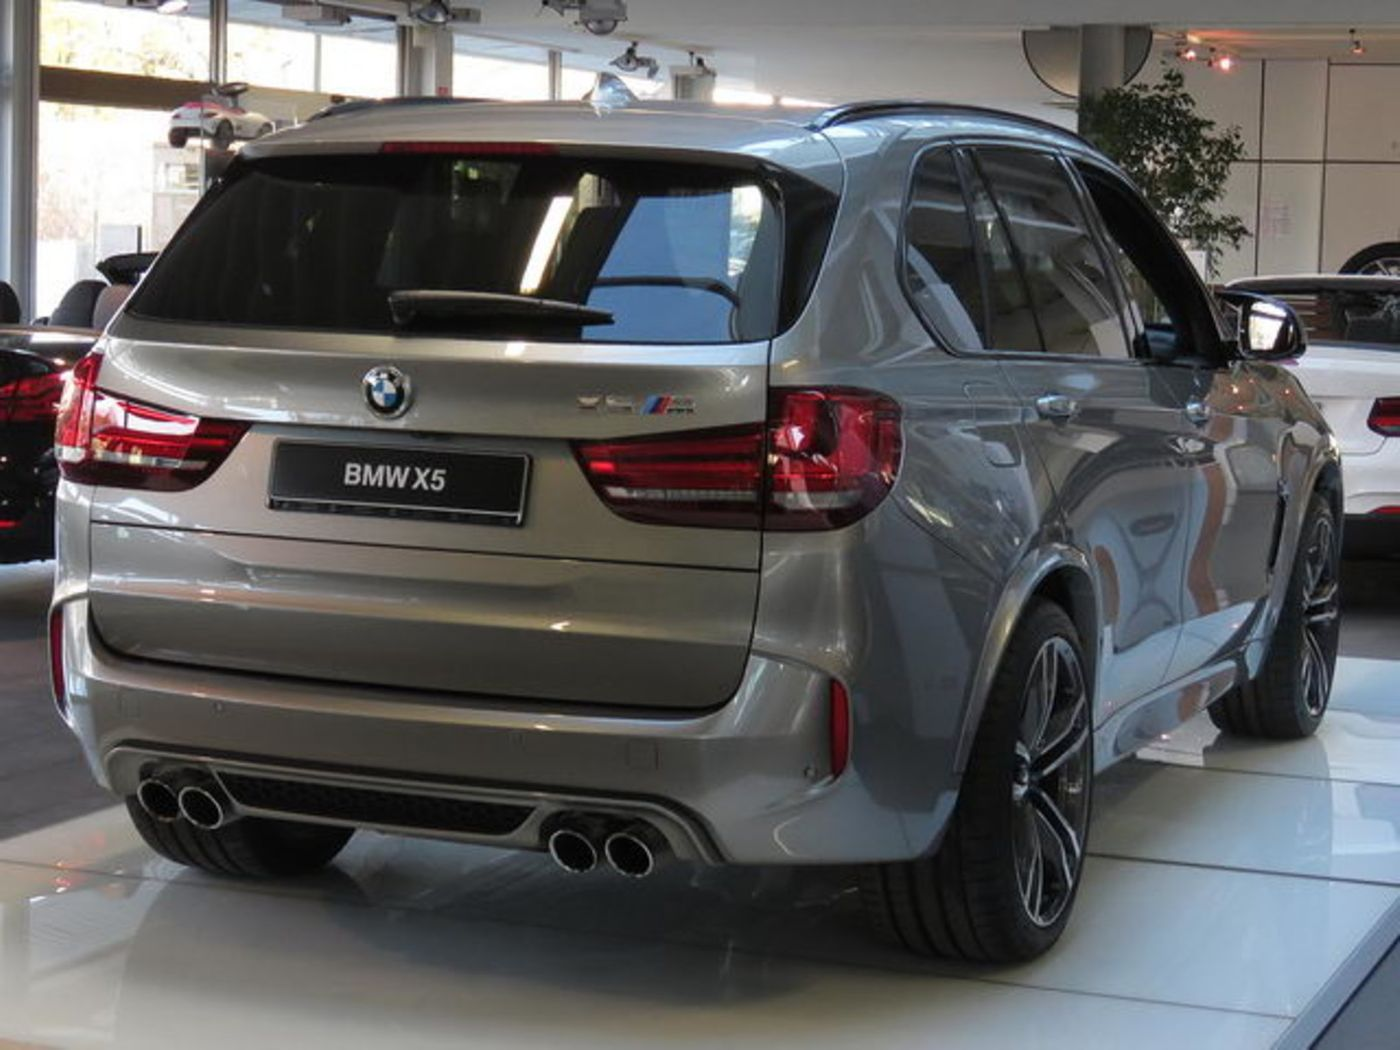 bmw x5 m navi ahk sca alu21 tv glasdach jahreswagen. Black Bedroom Furniture Sets. Home Design Ideas